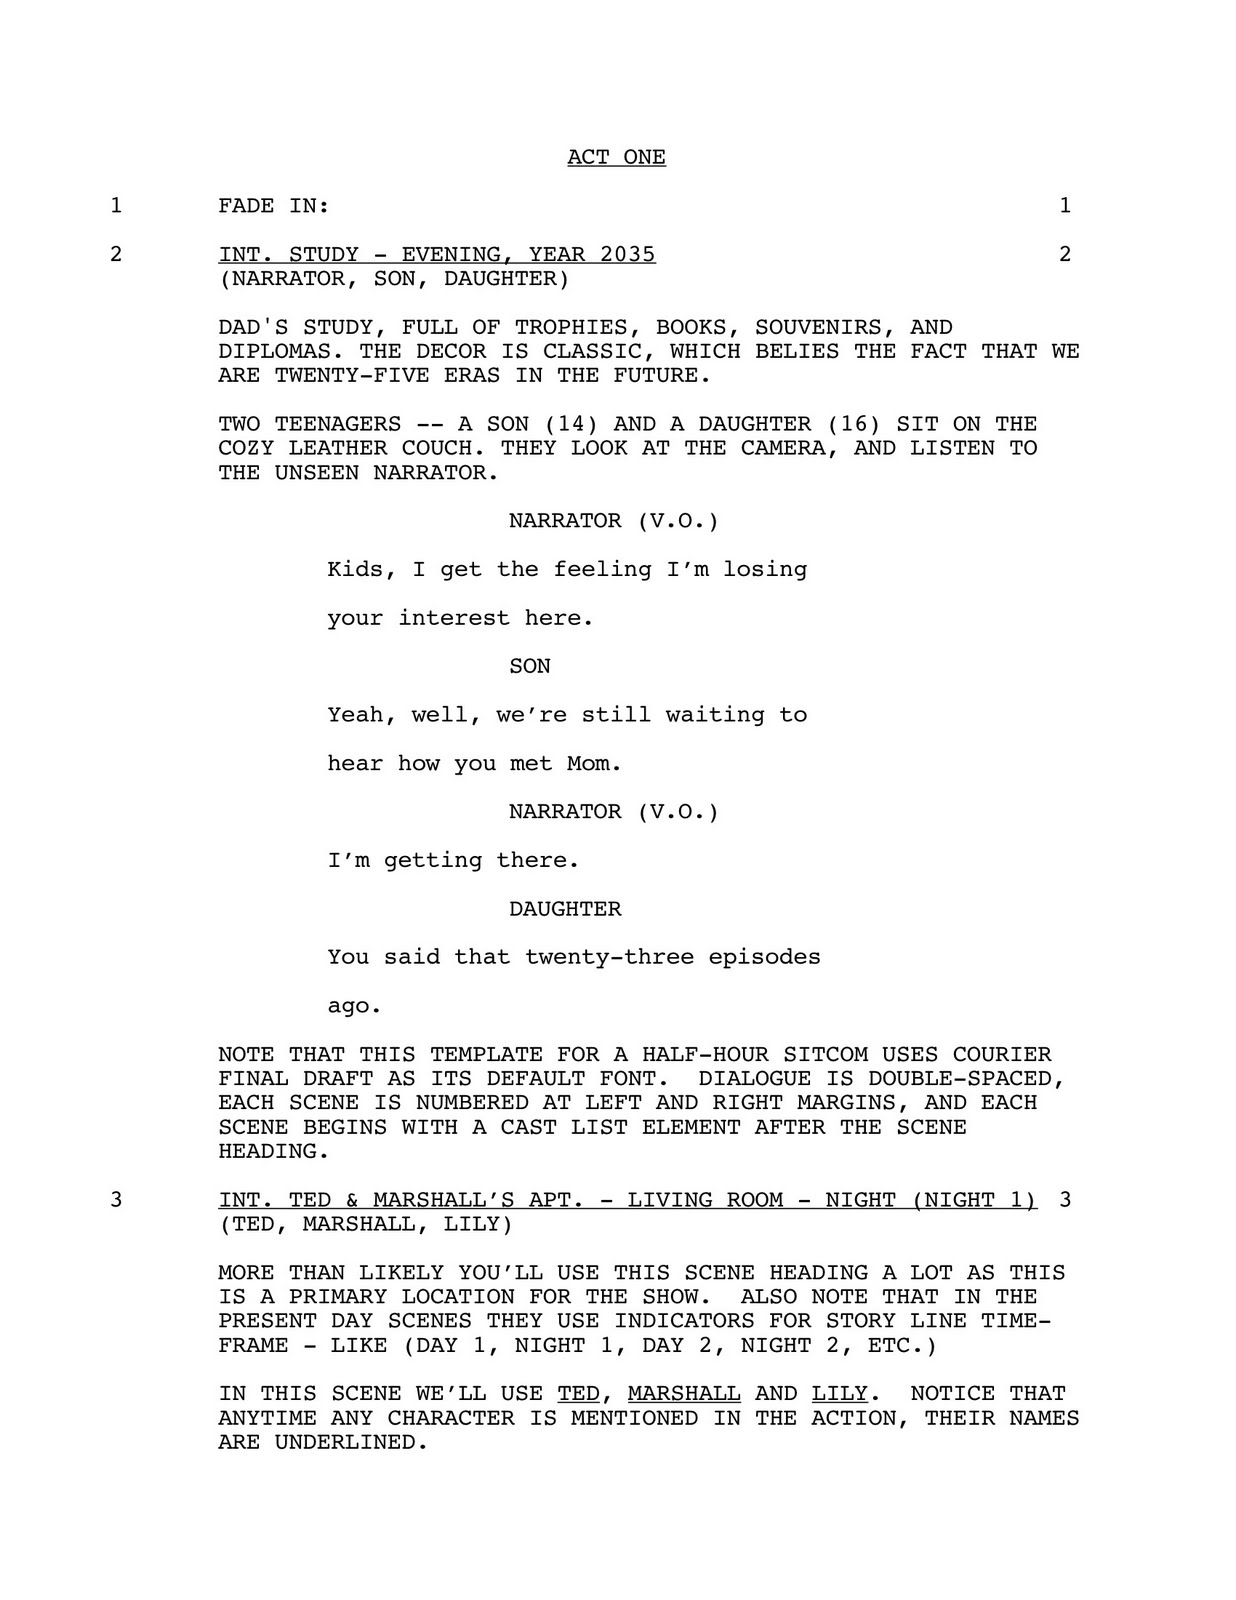 film script writing format The key to writing a short film is to keep it simple it's just not possible to squeeze a feature film idea or a particularly complex idea into a short format and do it justice it's a bit like trying to squeeze a novel into a short story – they're different animals.